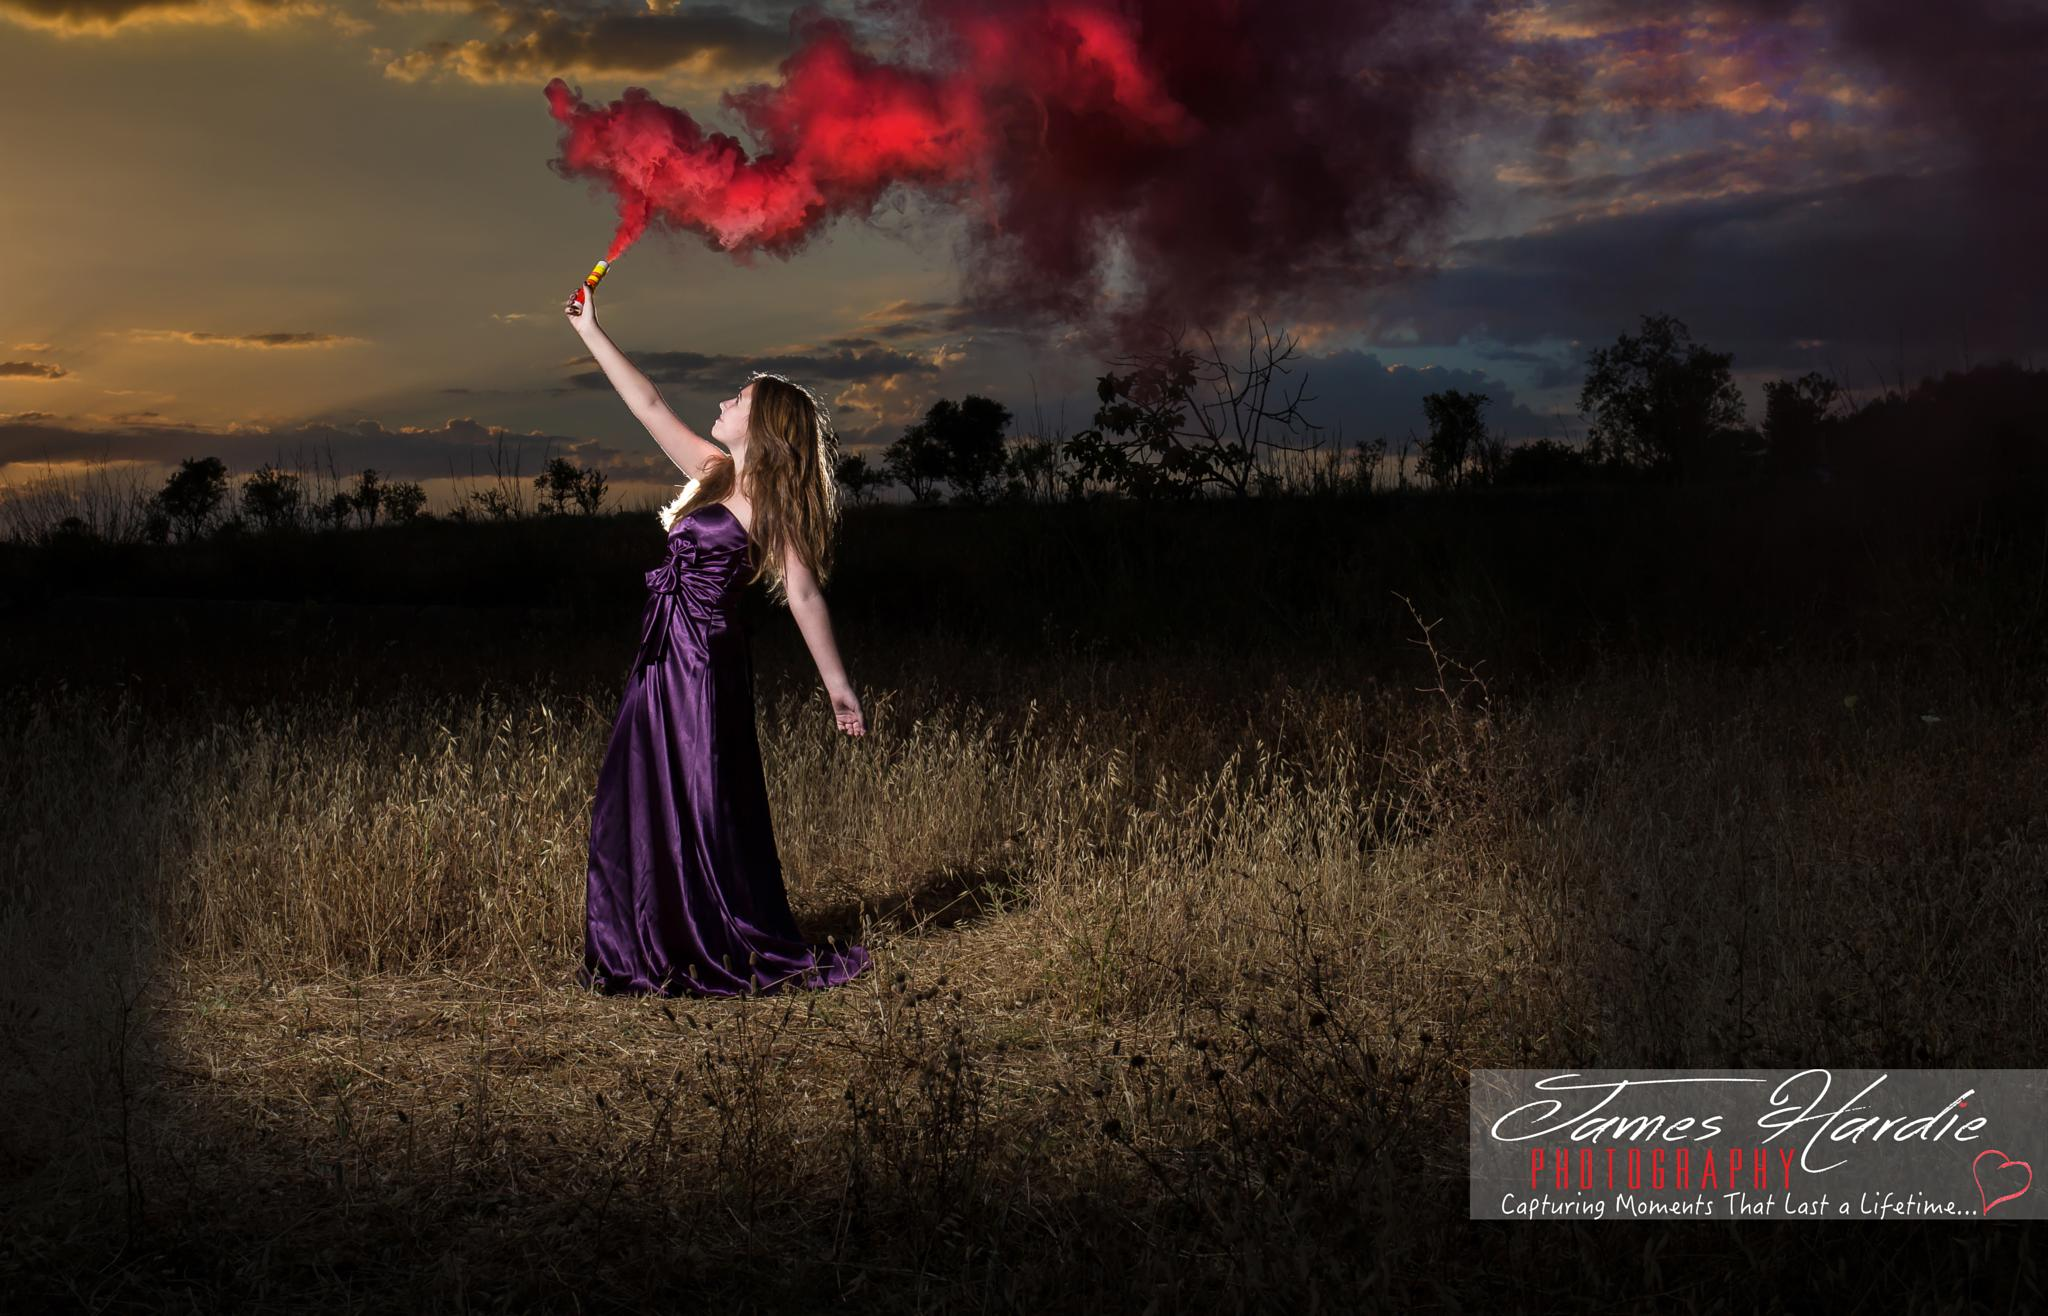 No Smoke Without Fire by James Hardie